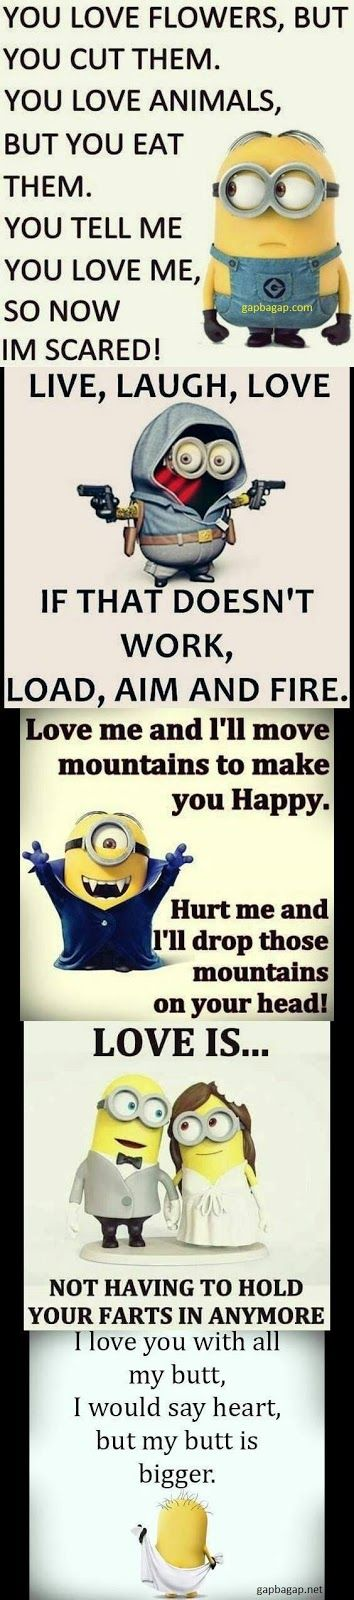 Top 10 Funniest Memes About Love By The Minions